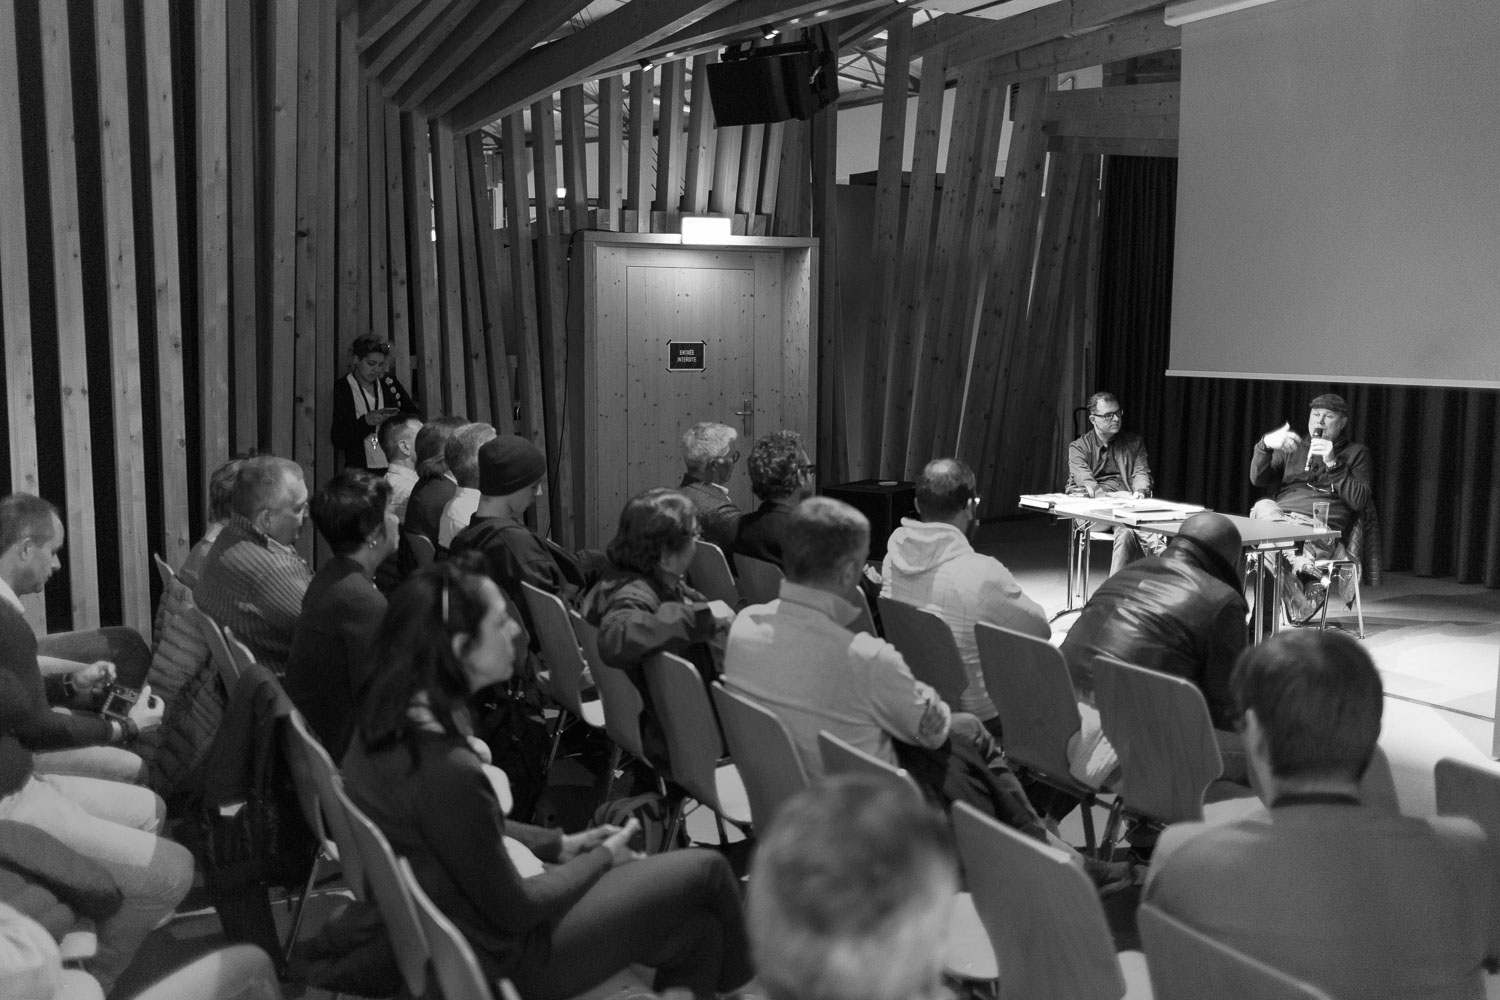 Conference with Jean-Christophe Béchet at the Luxembourg Street Photography Festival 2017 at the Rotondes